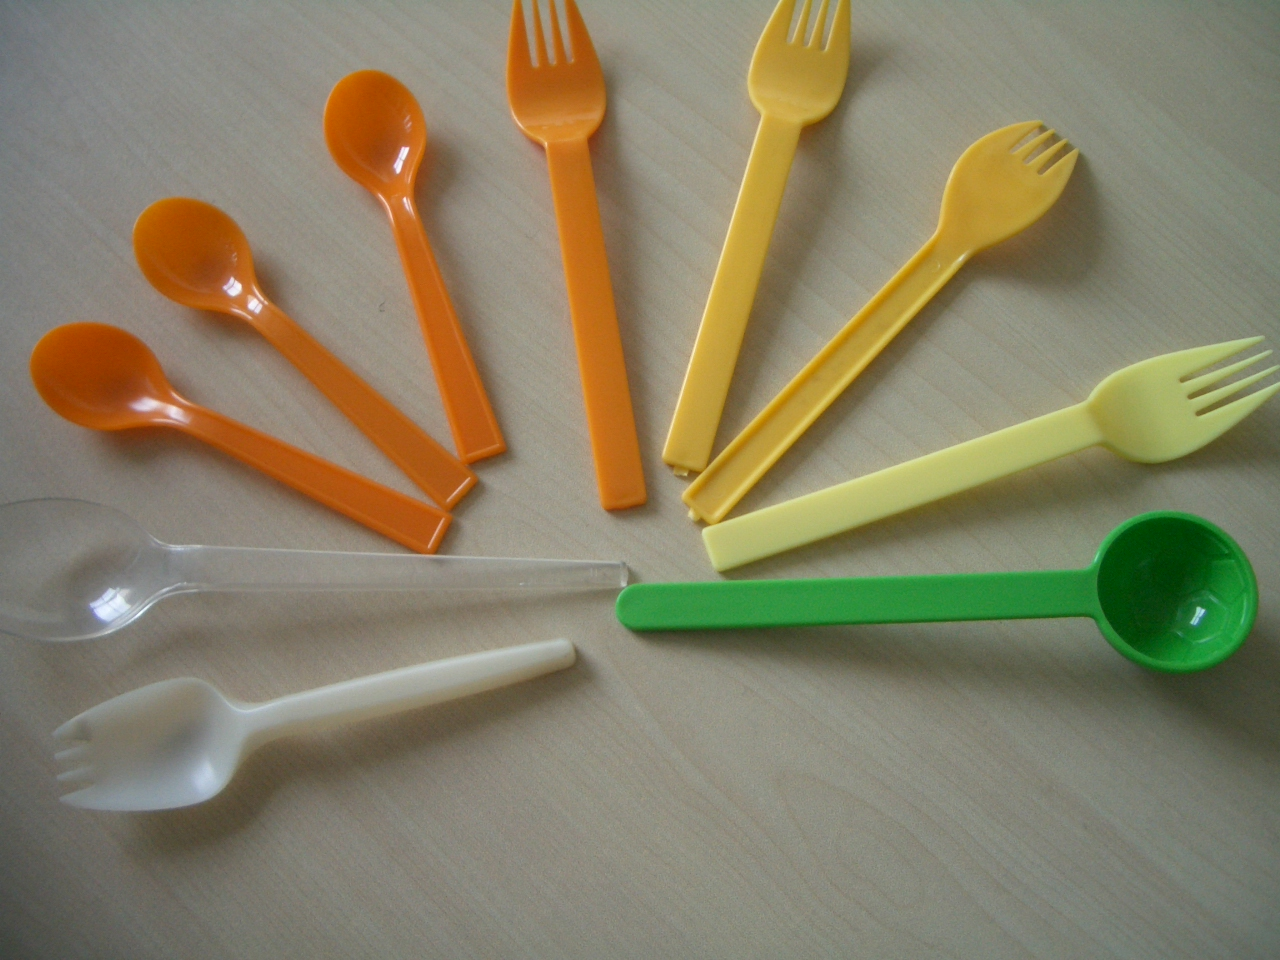 Knife, fork, spoon mould